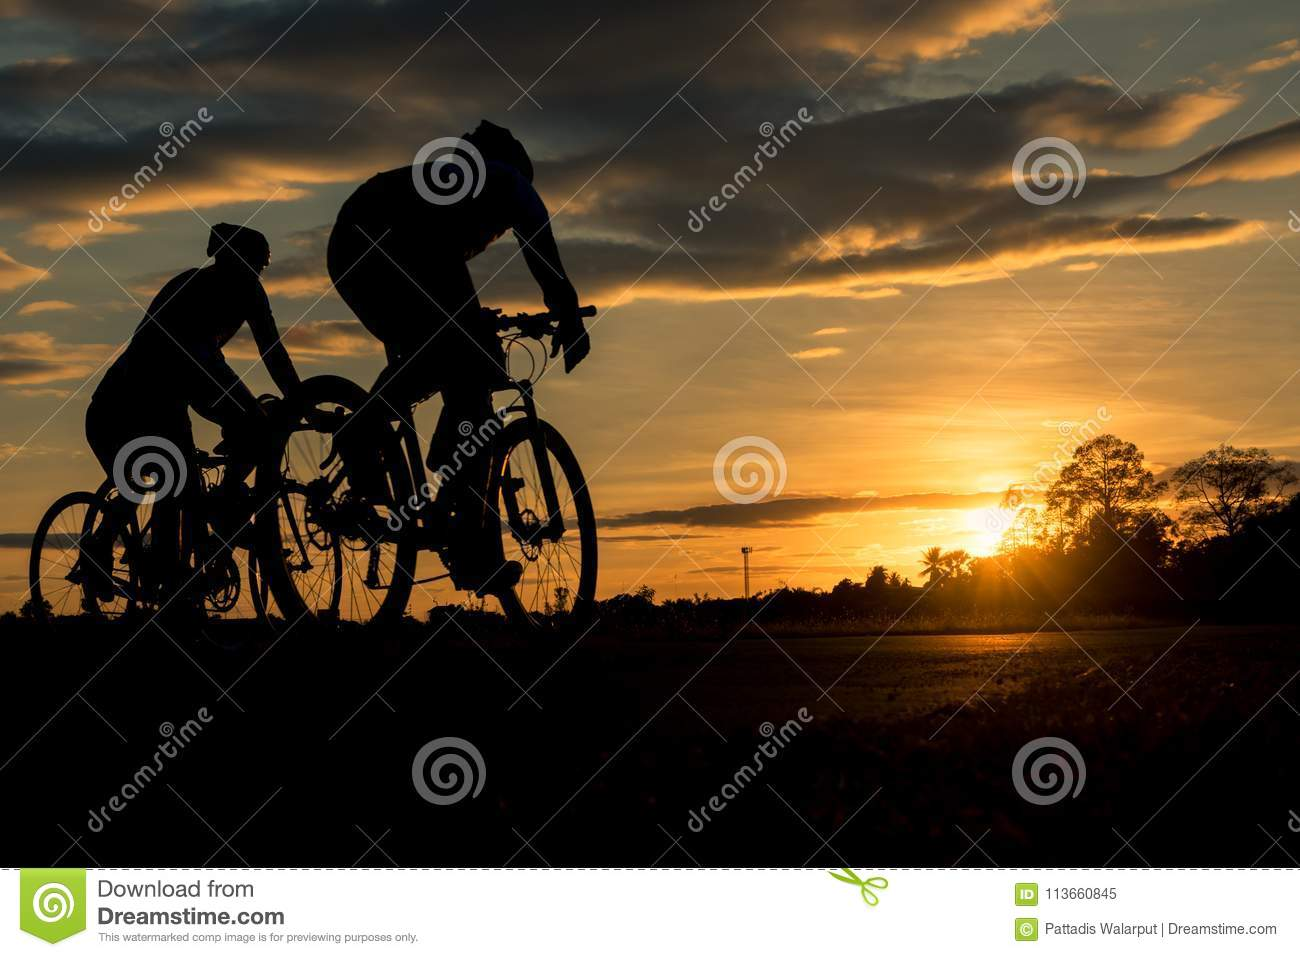 The men ride bikes at sunset with orange-blue sky background.